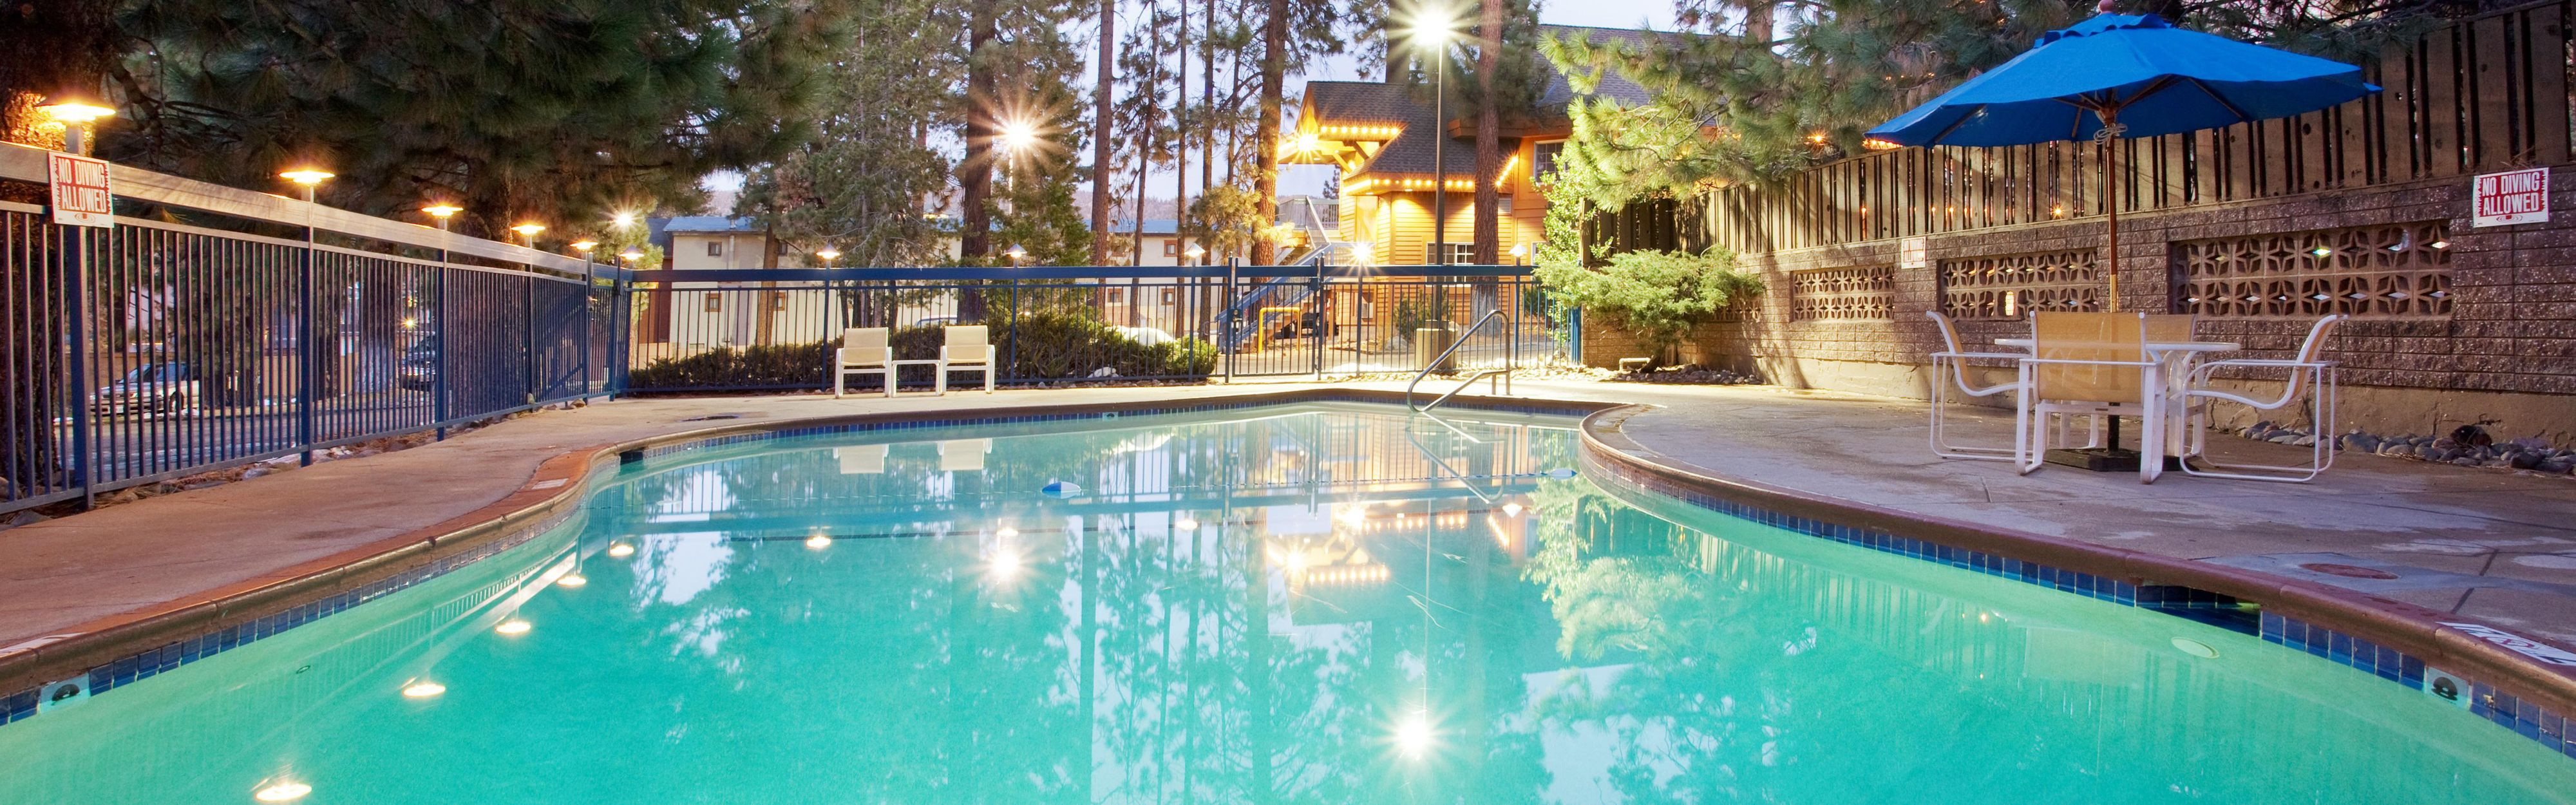 South Lake Tahoe Motels And Hotels